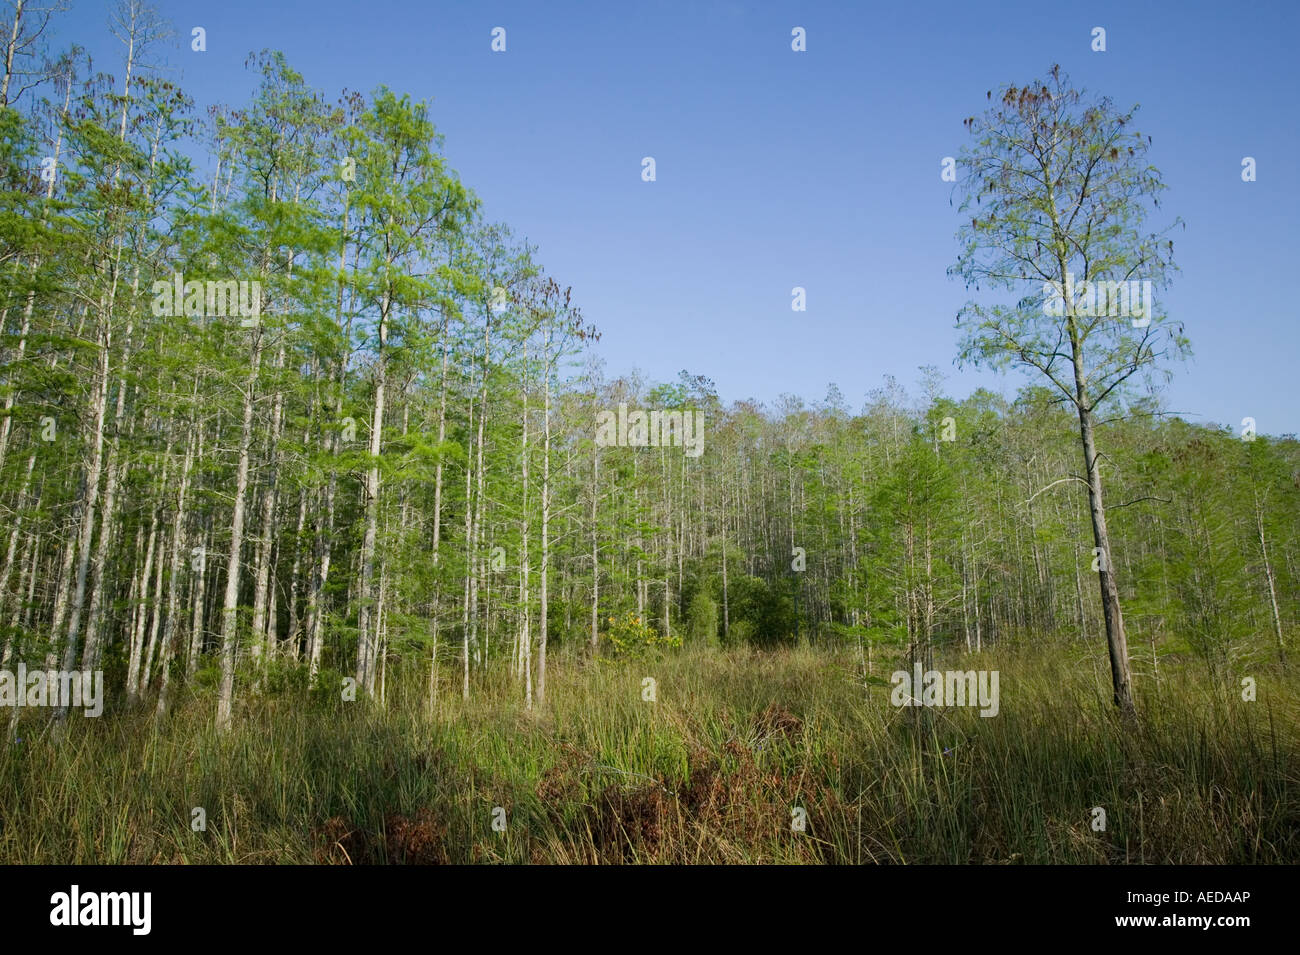 swamp cypress forest near Naples Florida USA - Stock Image